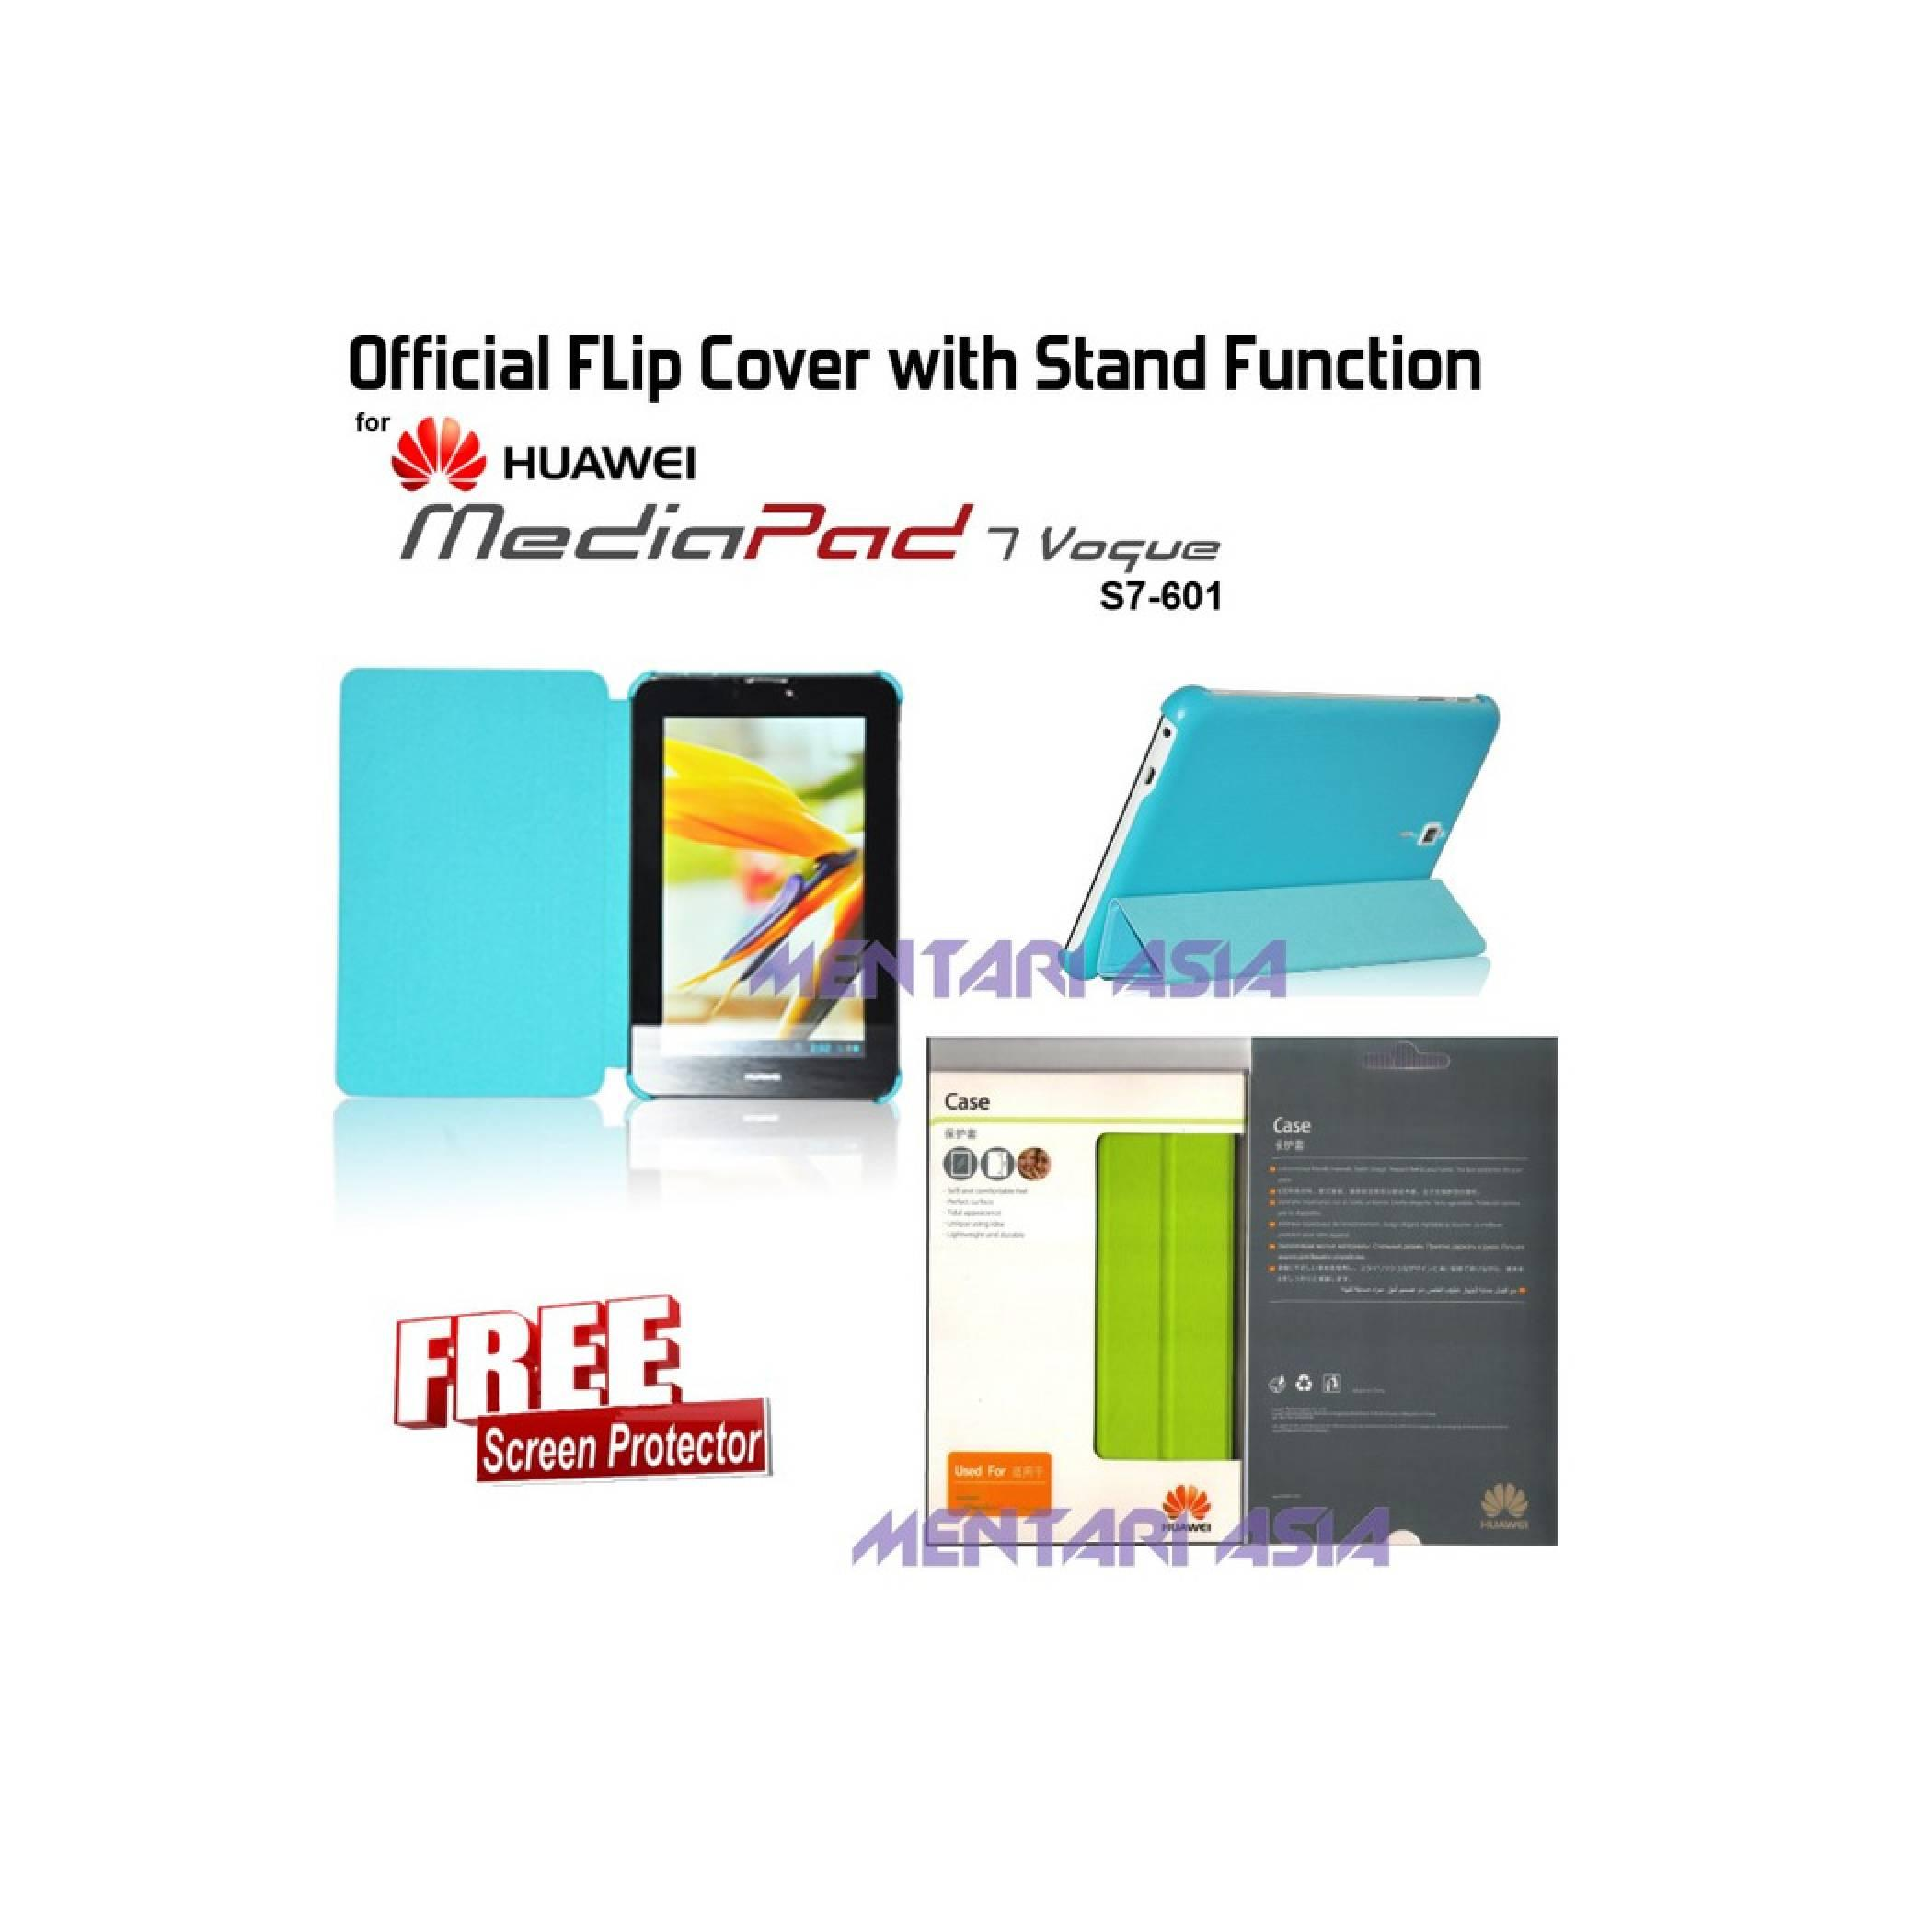 Flipcover HUAWEI MediaPad 7 Vogue S7-601 : Official Flipcover with Stand Function ( + FREE SP)